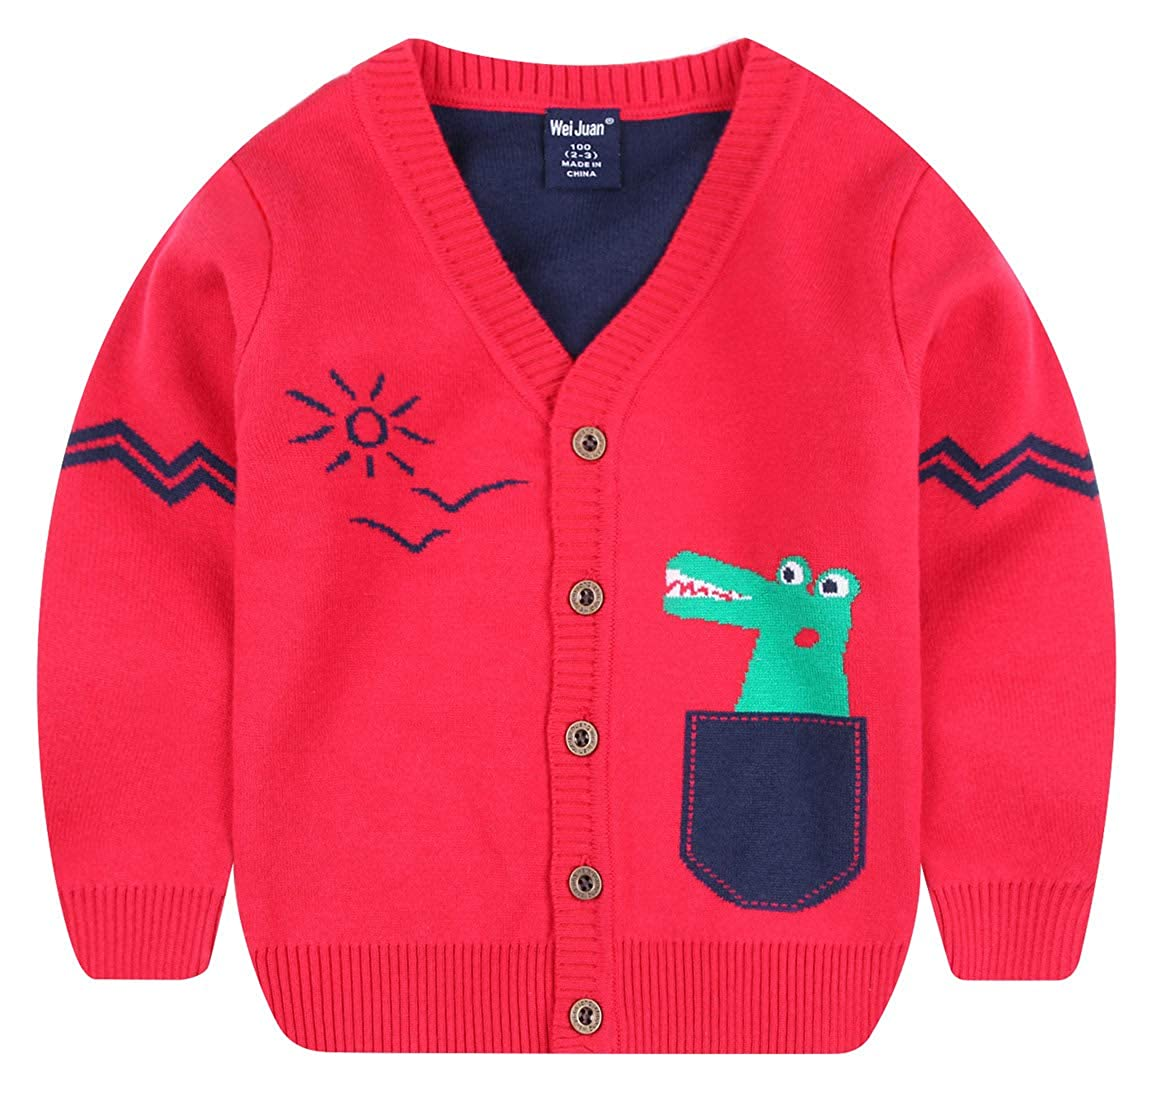 Weijuan Boys Sweater Cartoon Crocodile Long Sleeve Button Down Warm Cardigan 2-7T